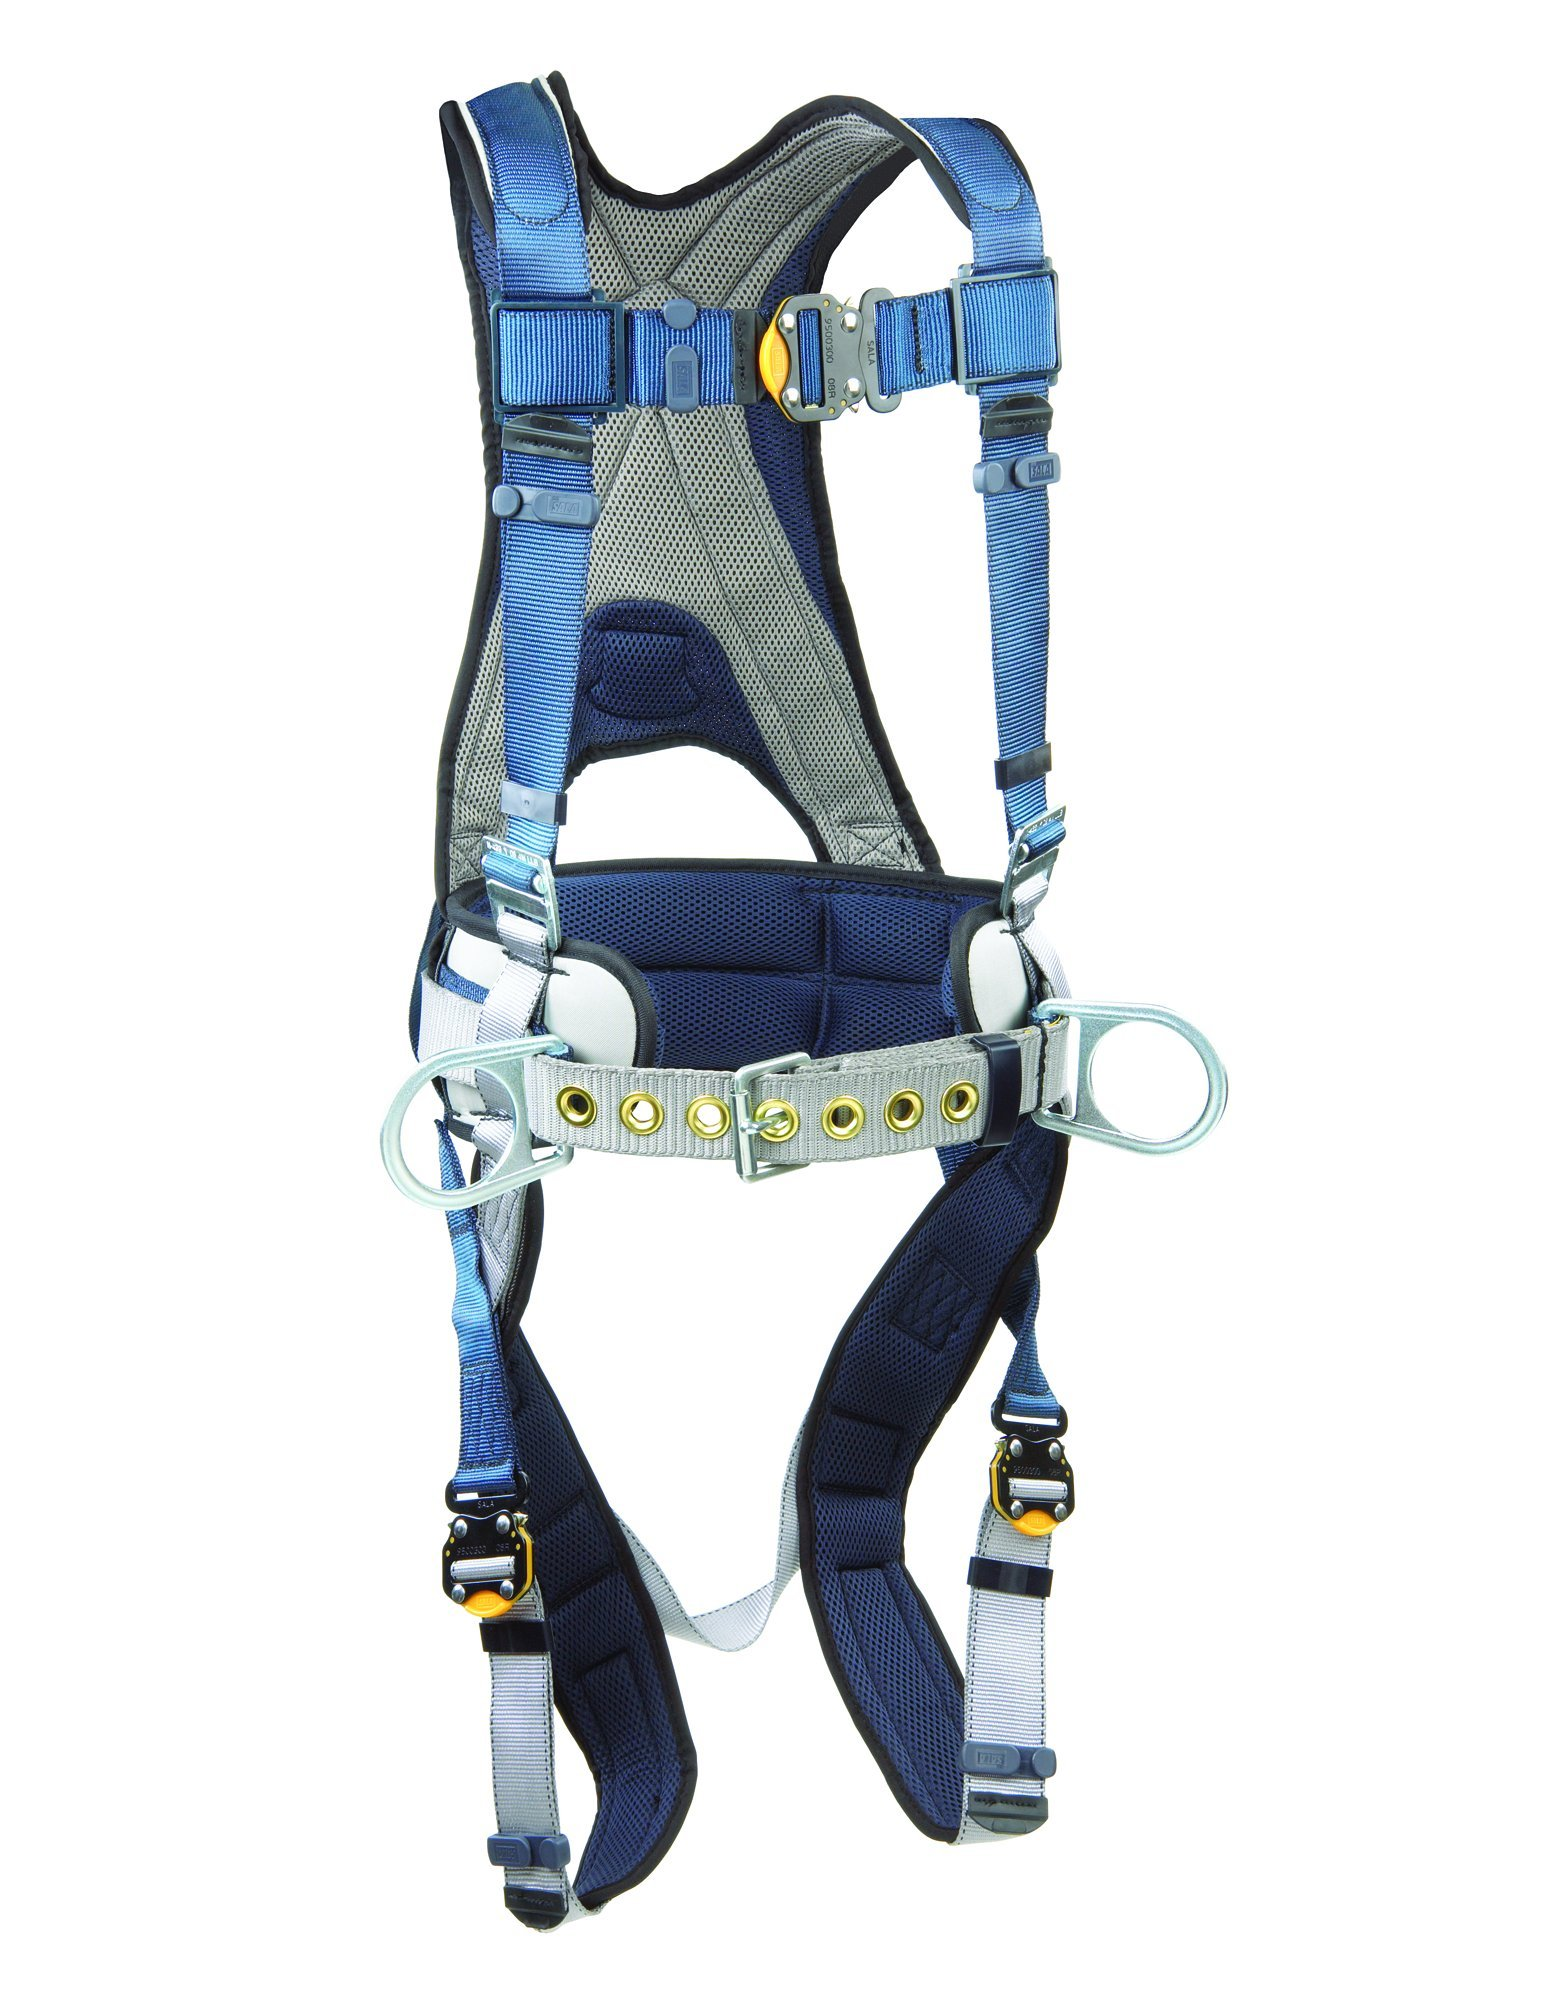 3M DBI-SALA ExoFit 1108500 Construction Harness, Back D-Ring, Sewn-In Back Pad & Belt w/Side D-Rings, Quick-Connect Buckles, Small, Blue/Gray by 3M Fall Protection Business (Image #1)